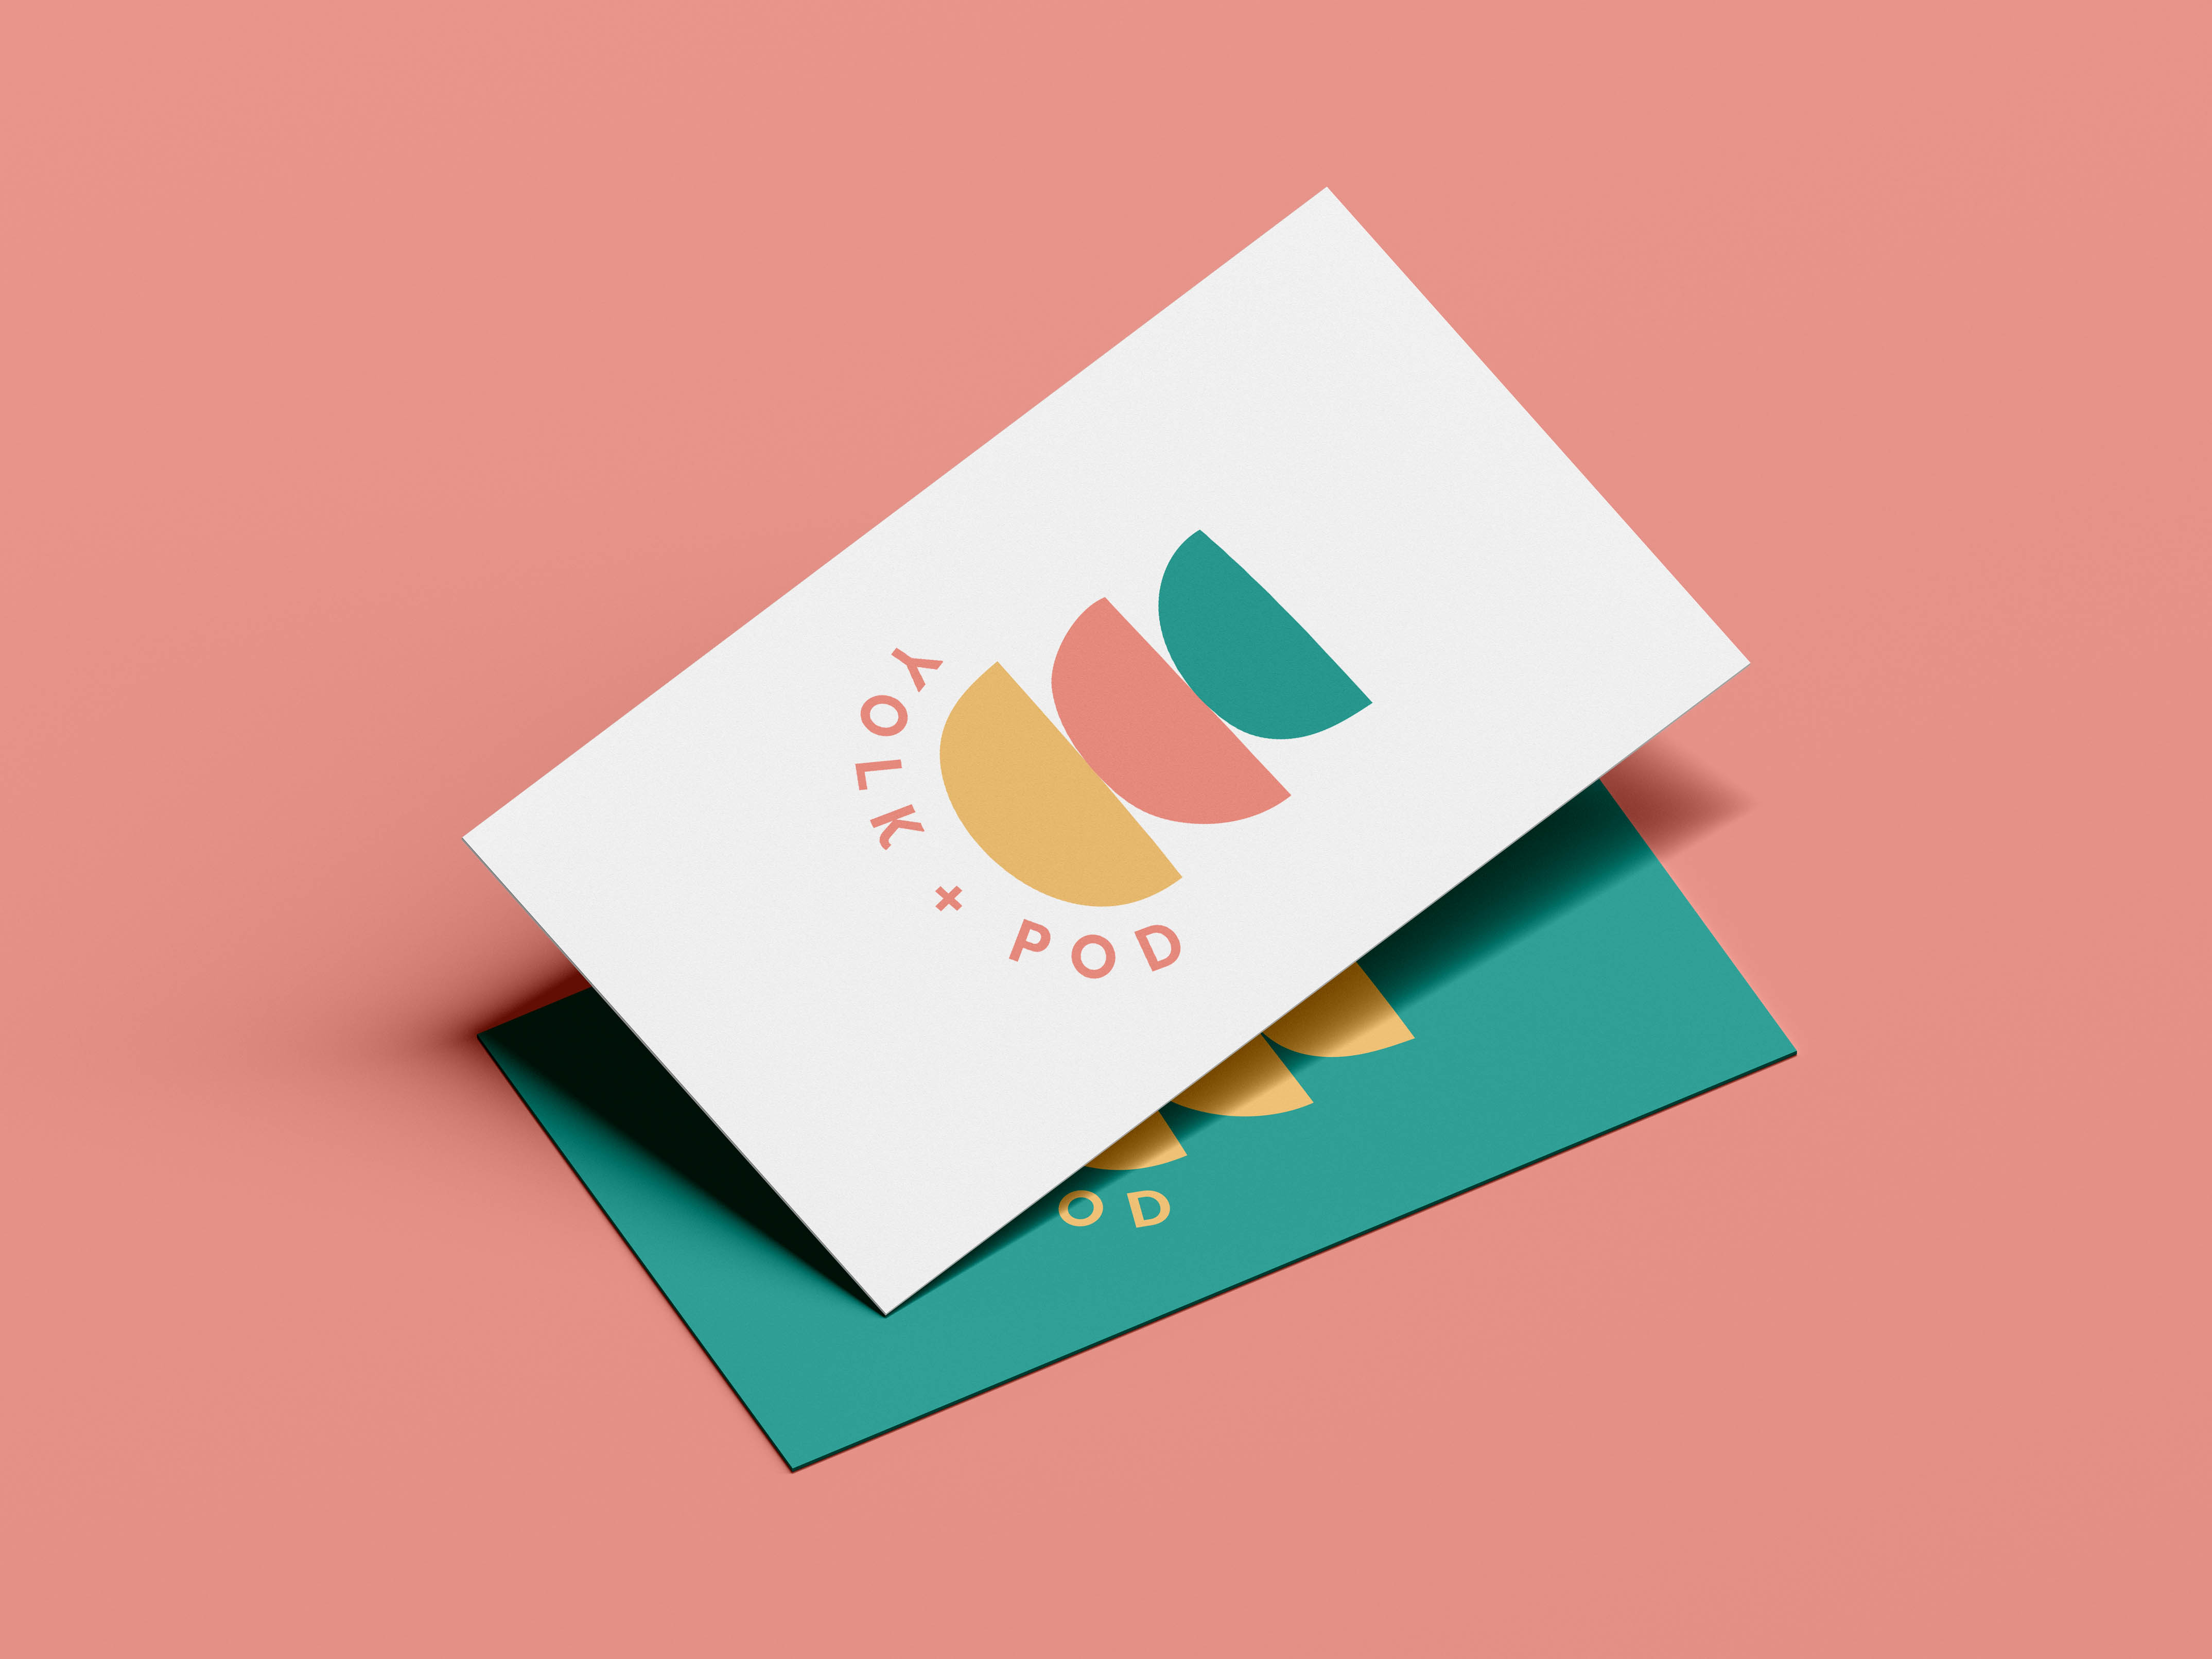 Yolk + Pod business cards